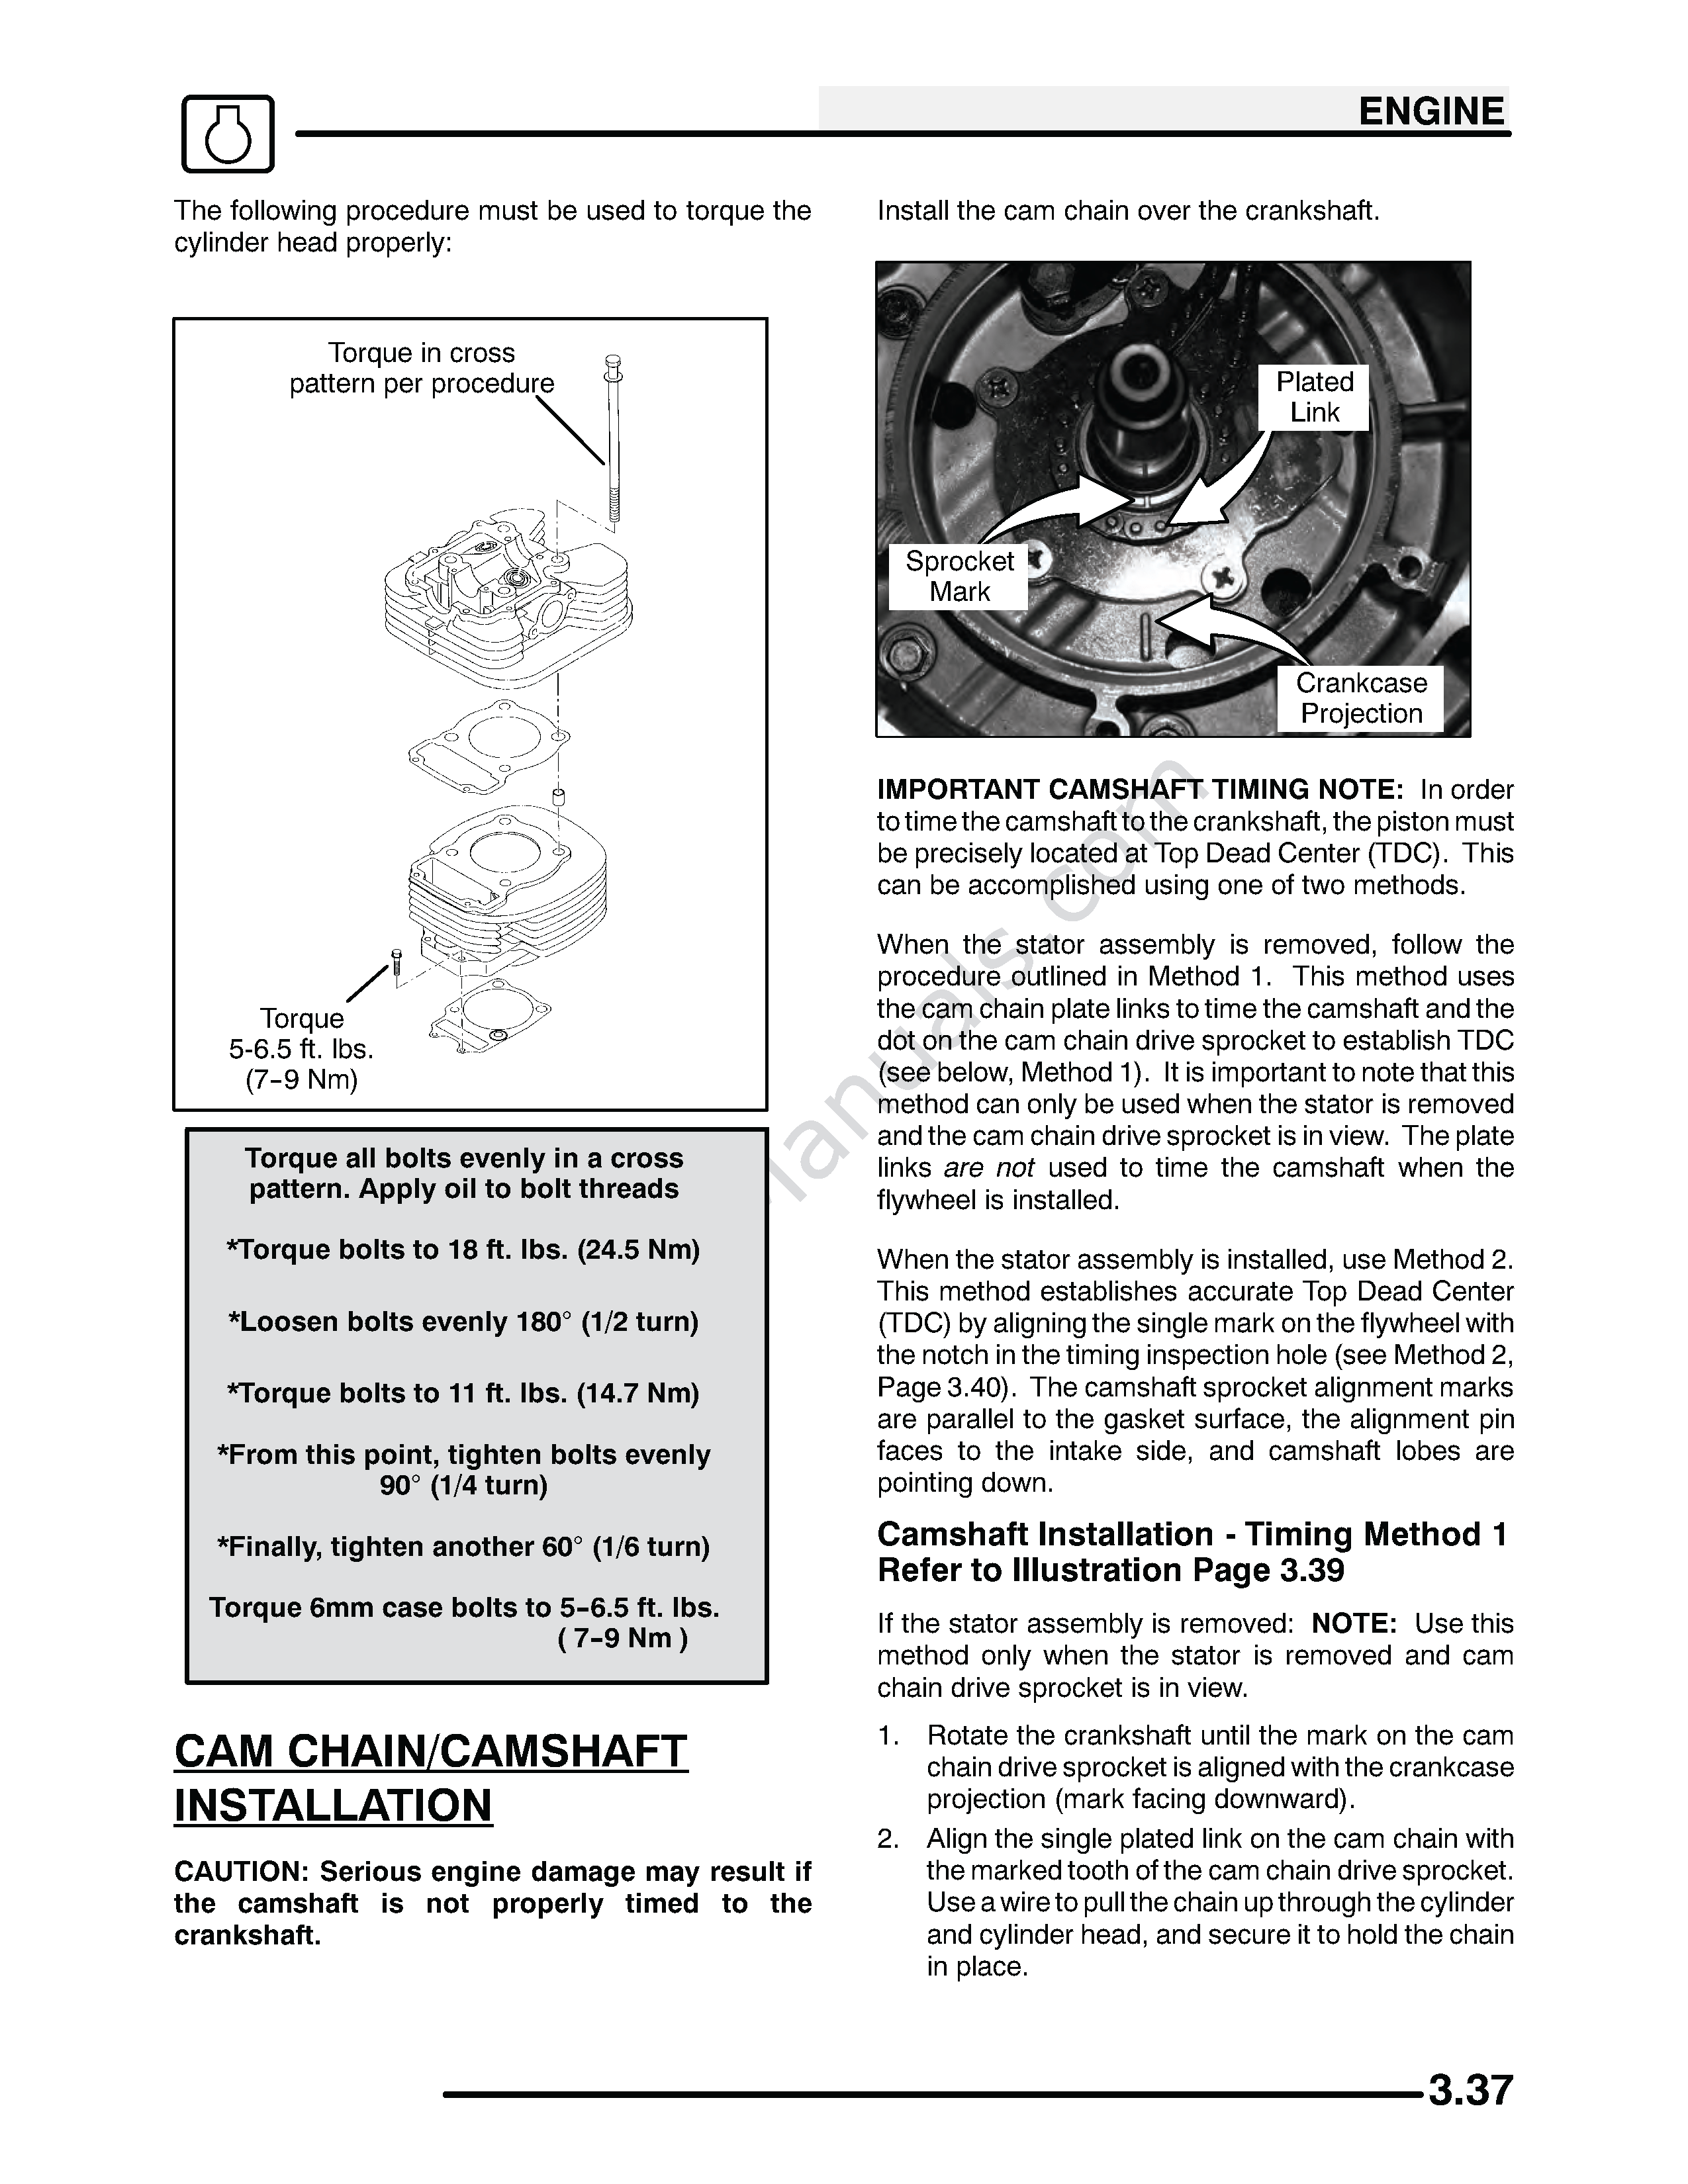 2005 Magnum 330_Need Cylinder Head Bolt Torque Specs